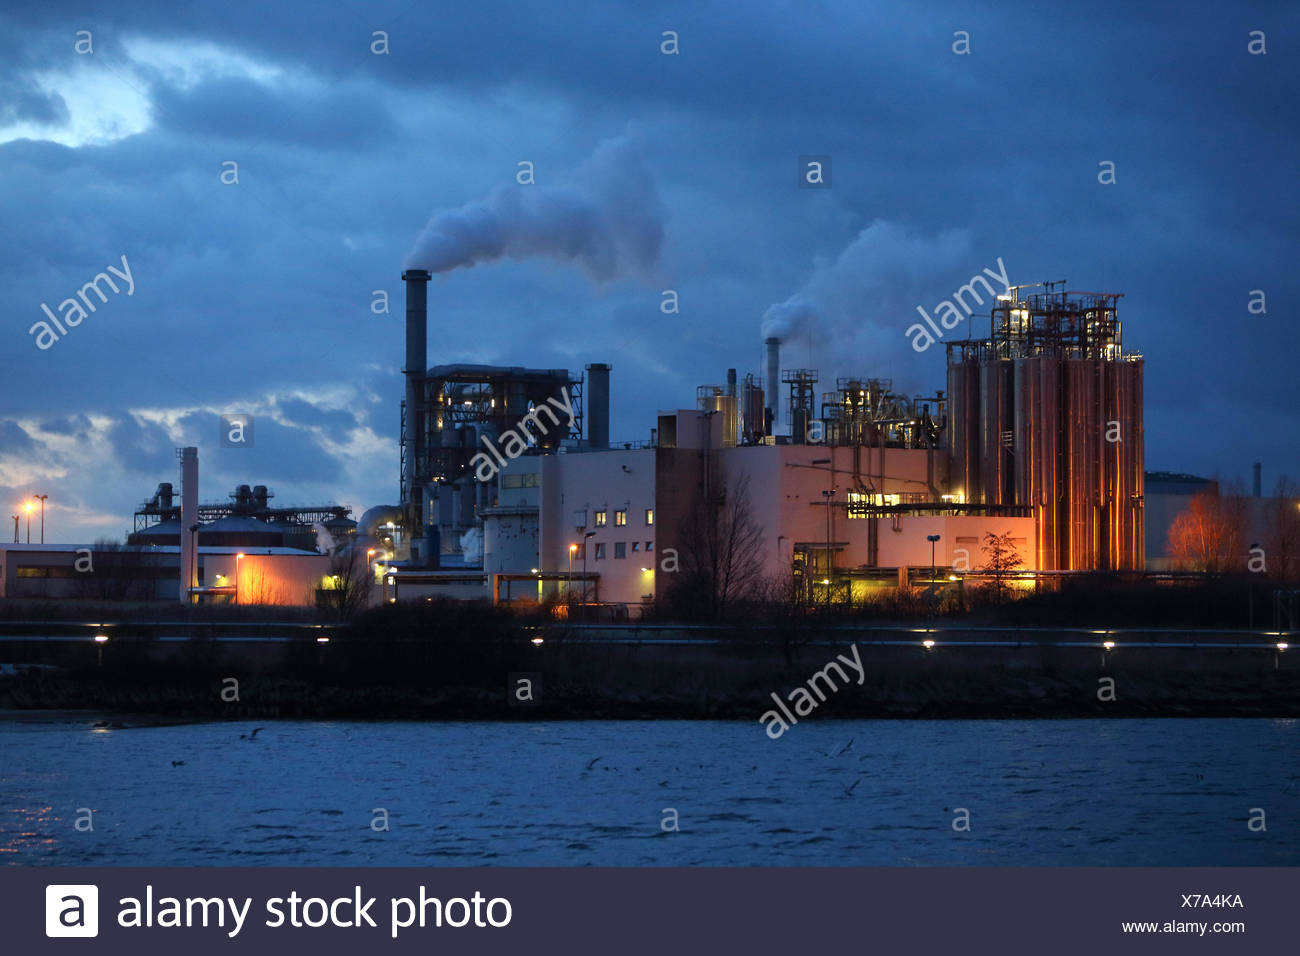 Wismar, Germany, industrial plant of Klausner Nordic Timber at dusk - Stock Image